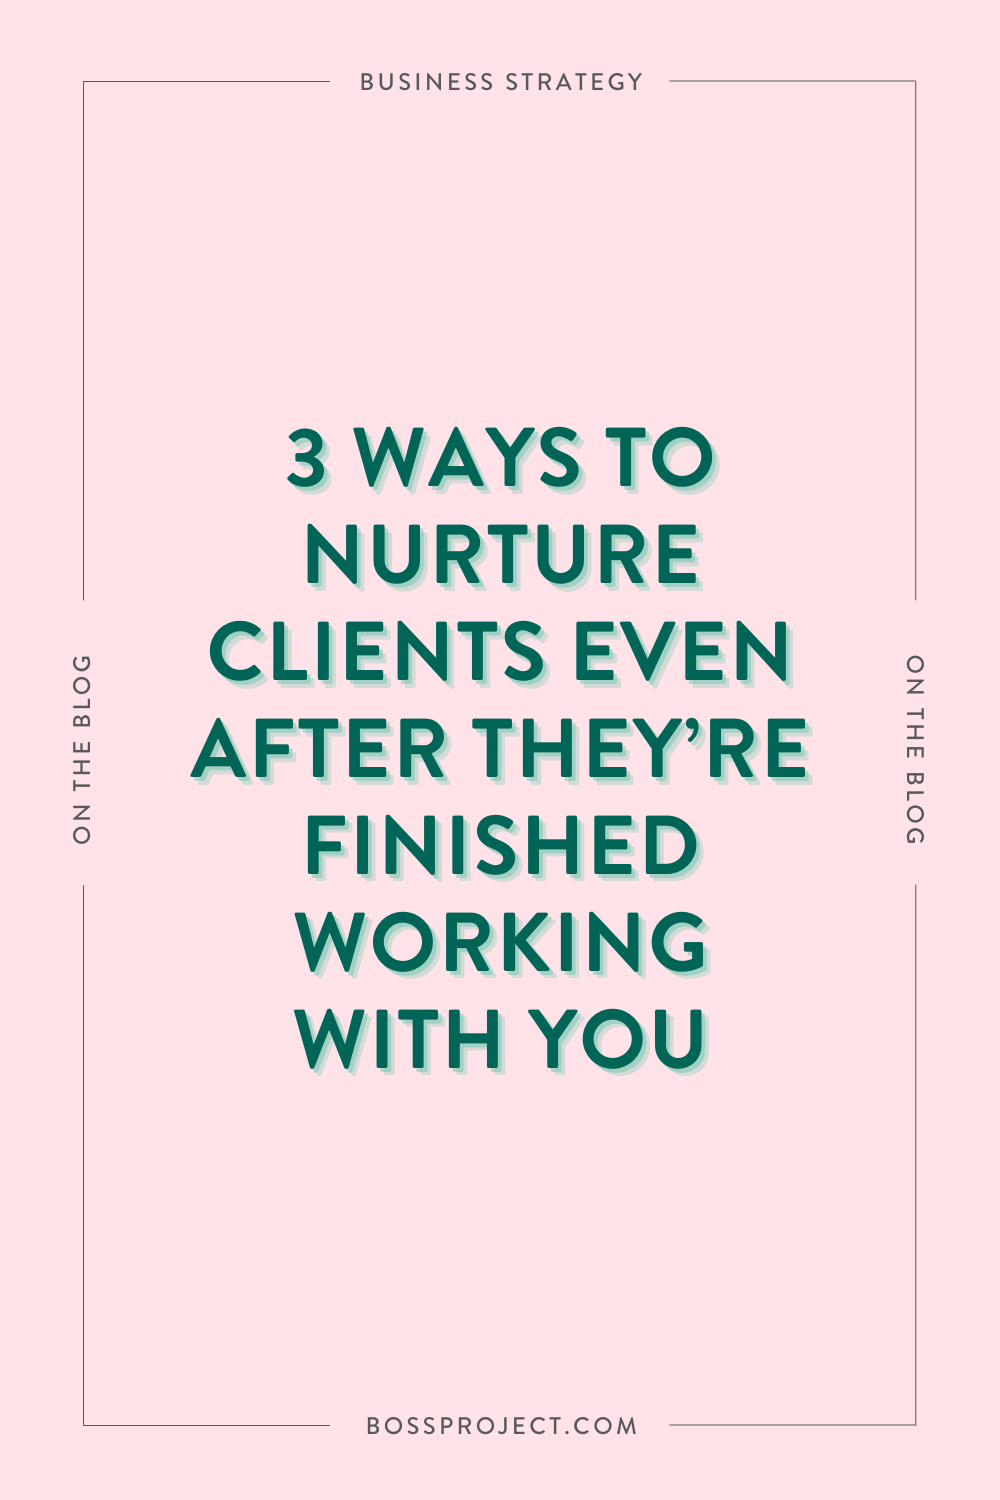 Your client experience doesn't just span from the first interaction to when you start working with them. It also includes your off boarding process and how you treat them once they've finished working with you. But how can you still nurture these re…